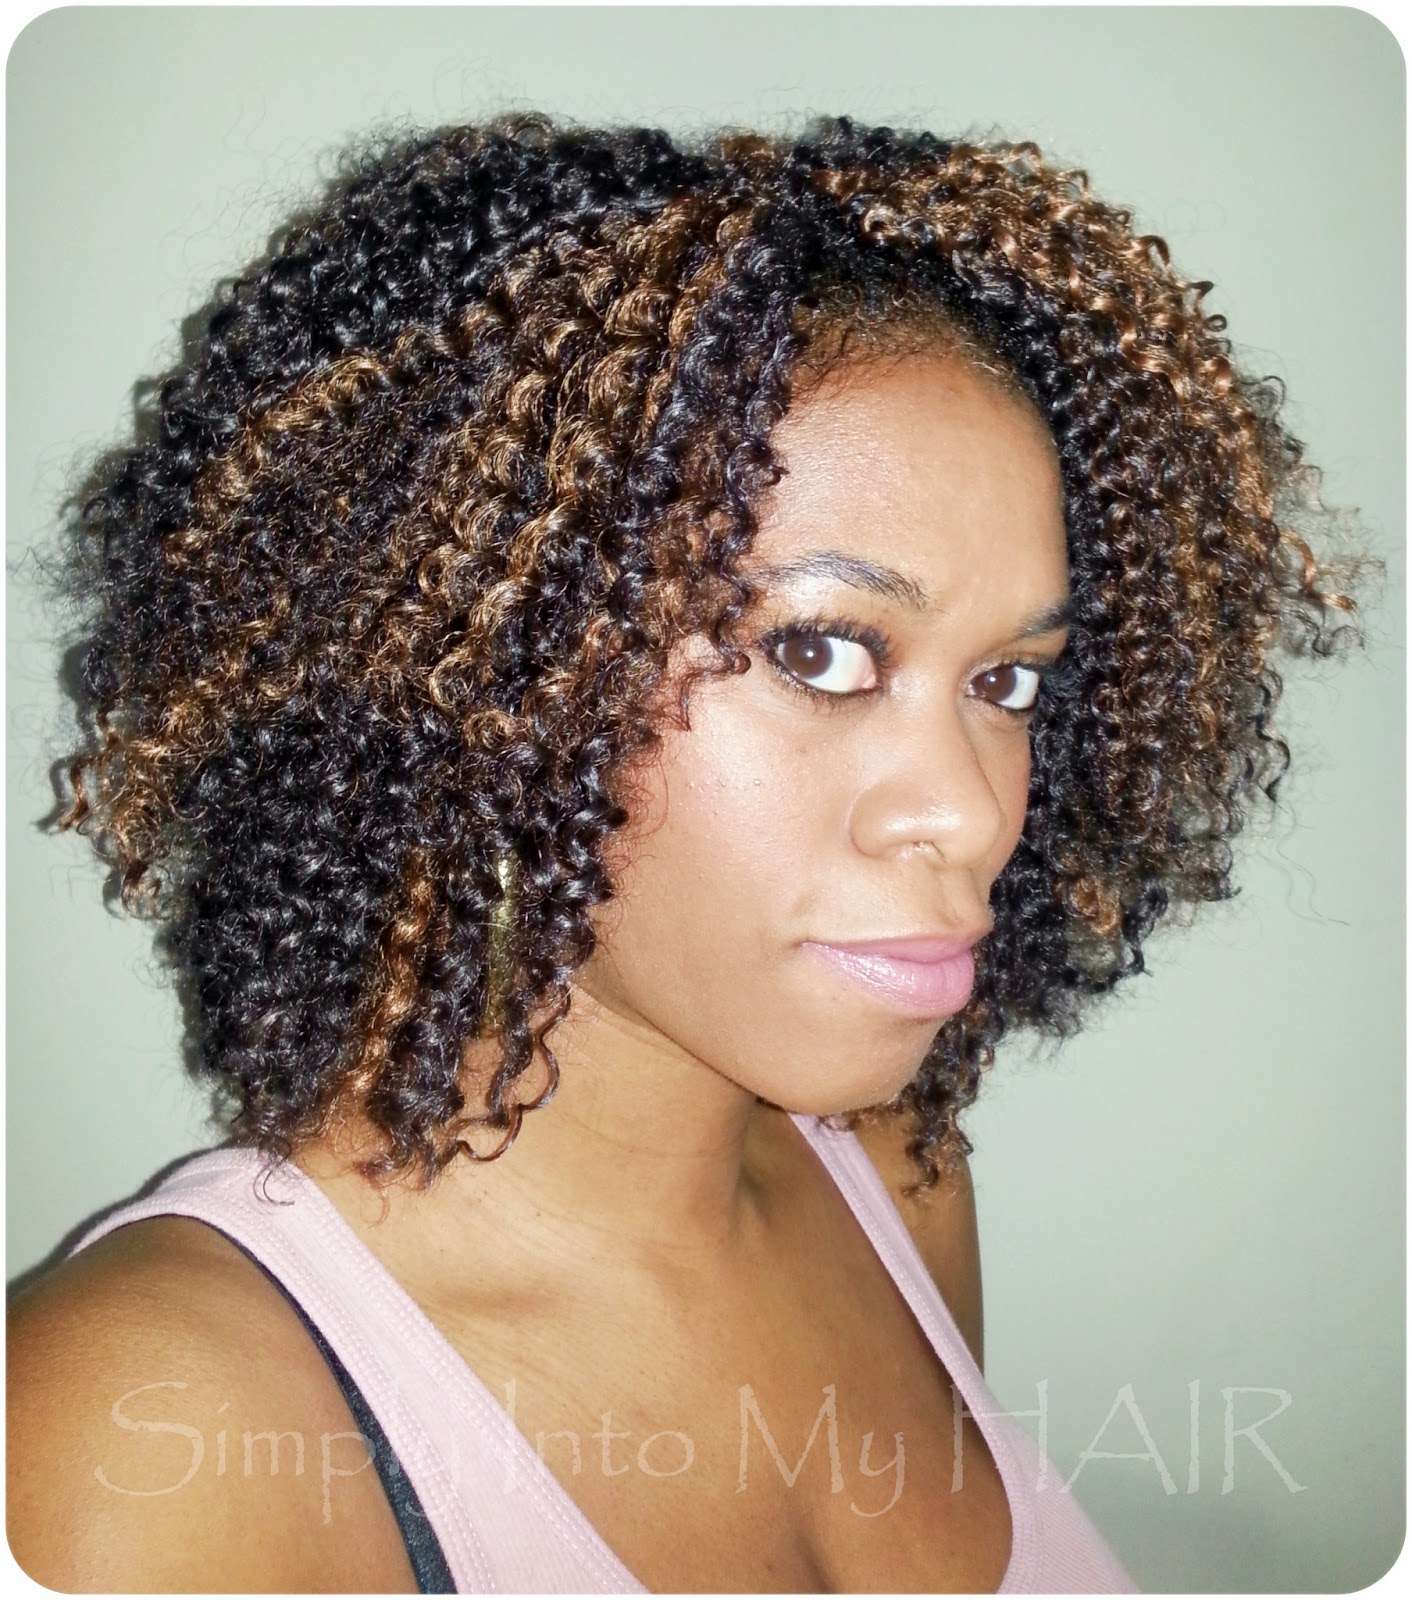 Crochet Hair How To : Crochet Braids #7 Simply Into My HAIR